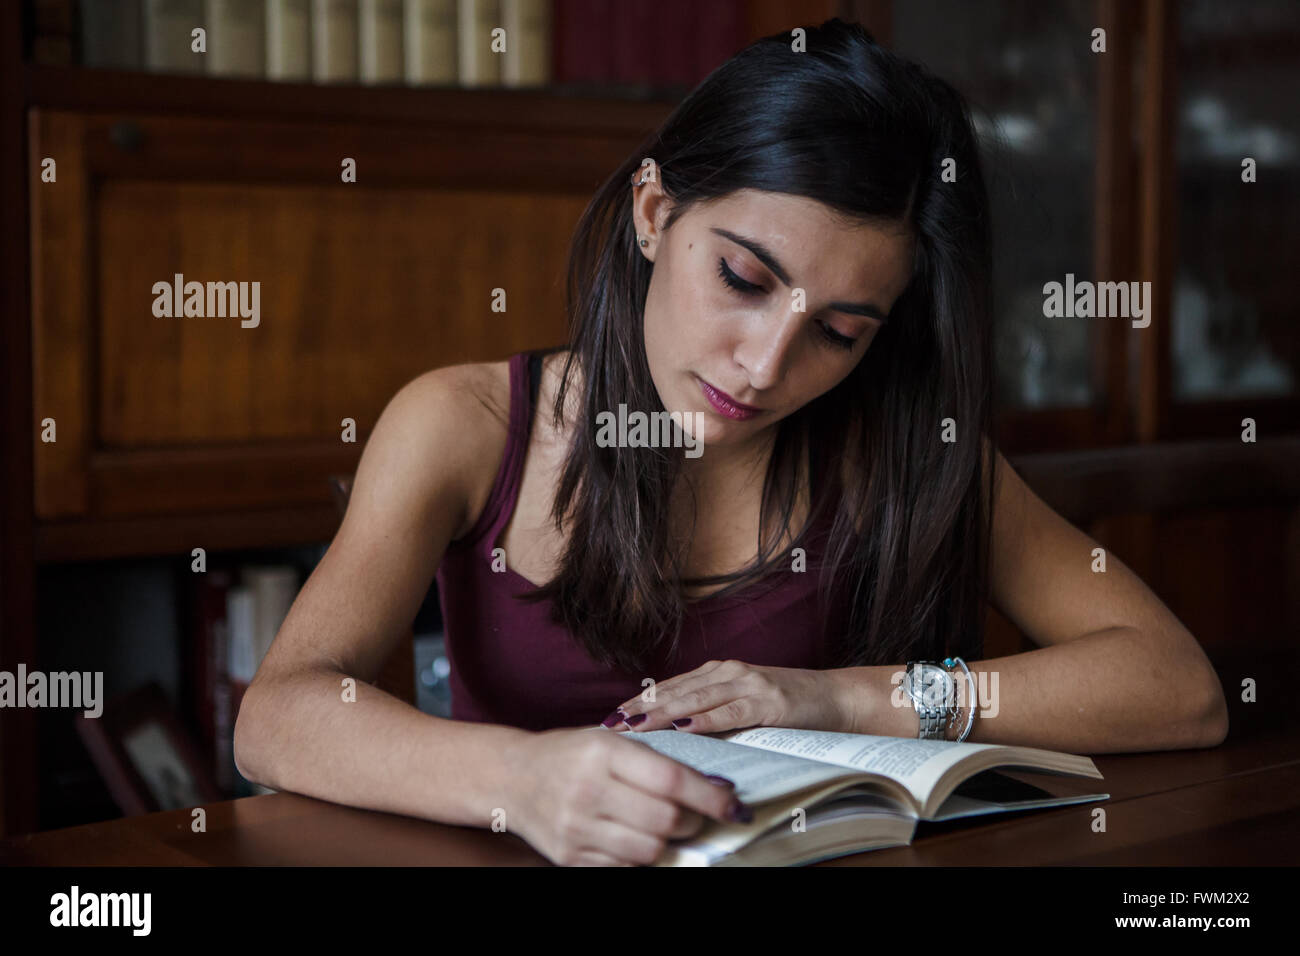 Concentrated Young Woman Reading Book At Desk - Stock Image